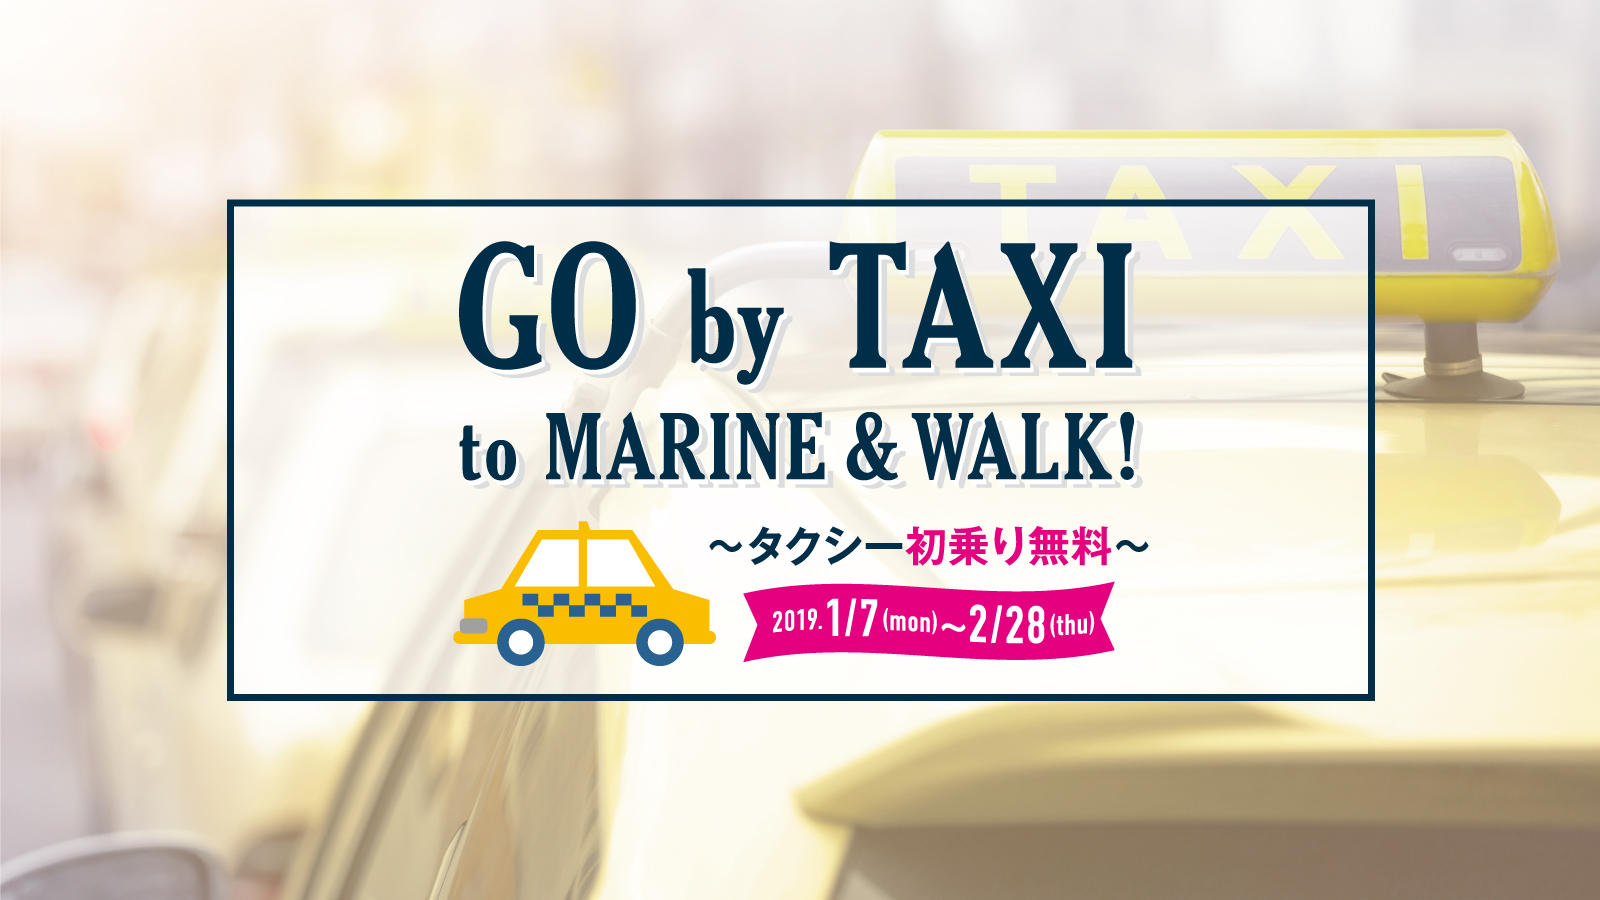 2019.1.7~2.28 GO by TAXI to MARINE&WALK !